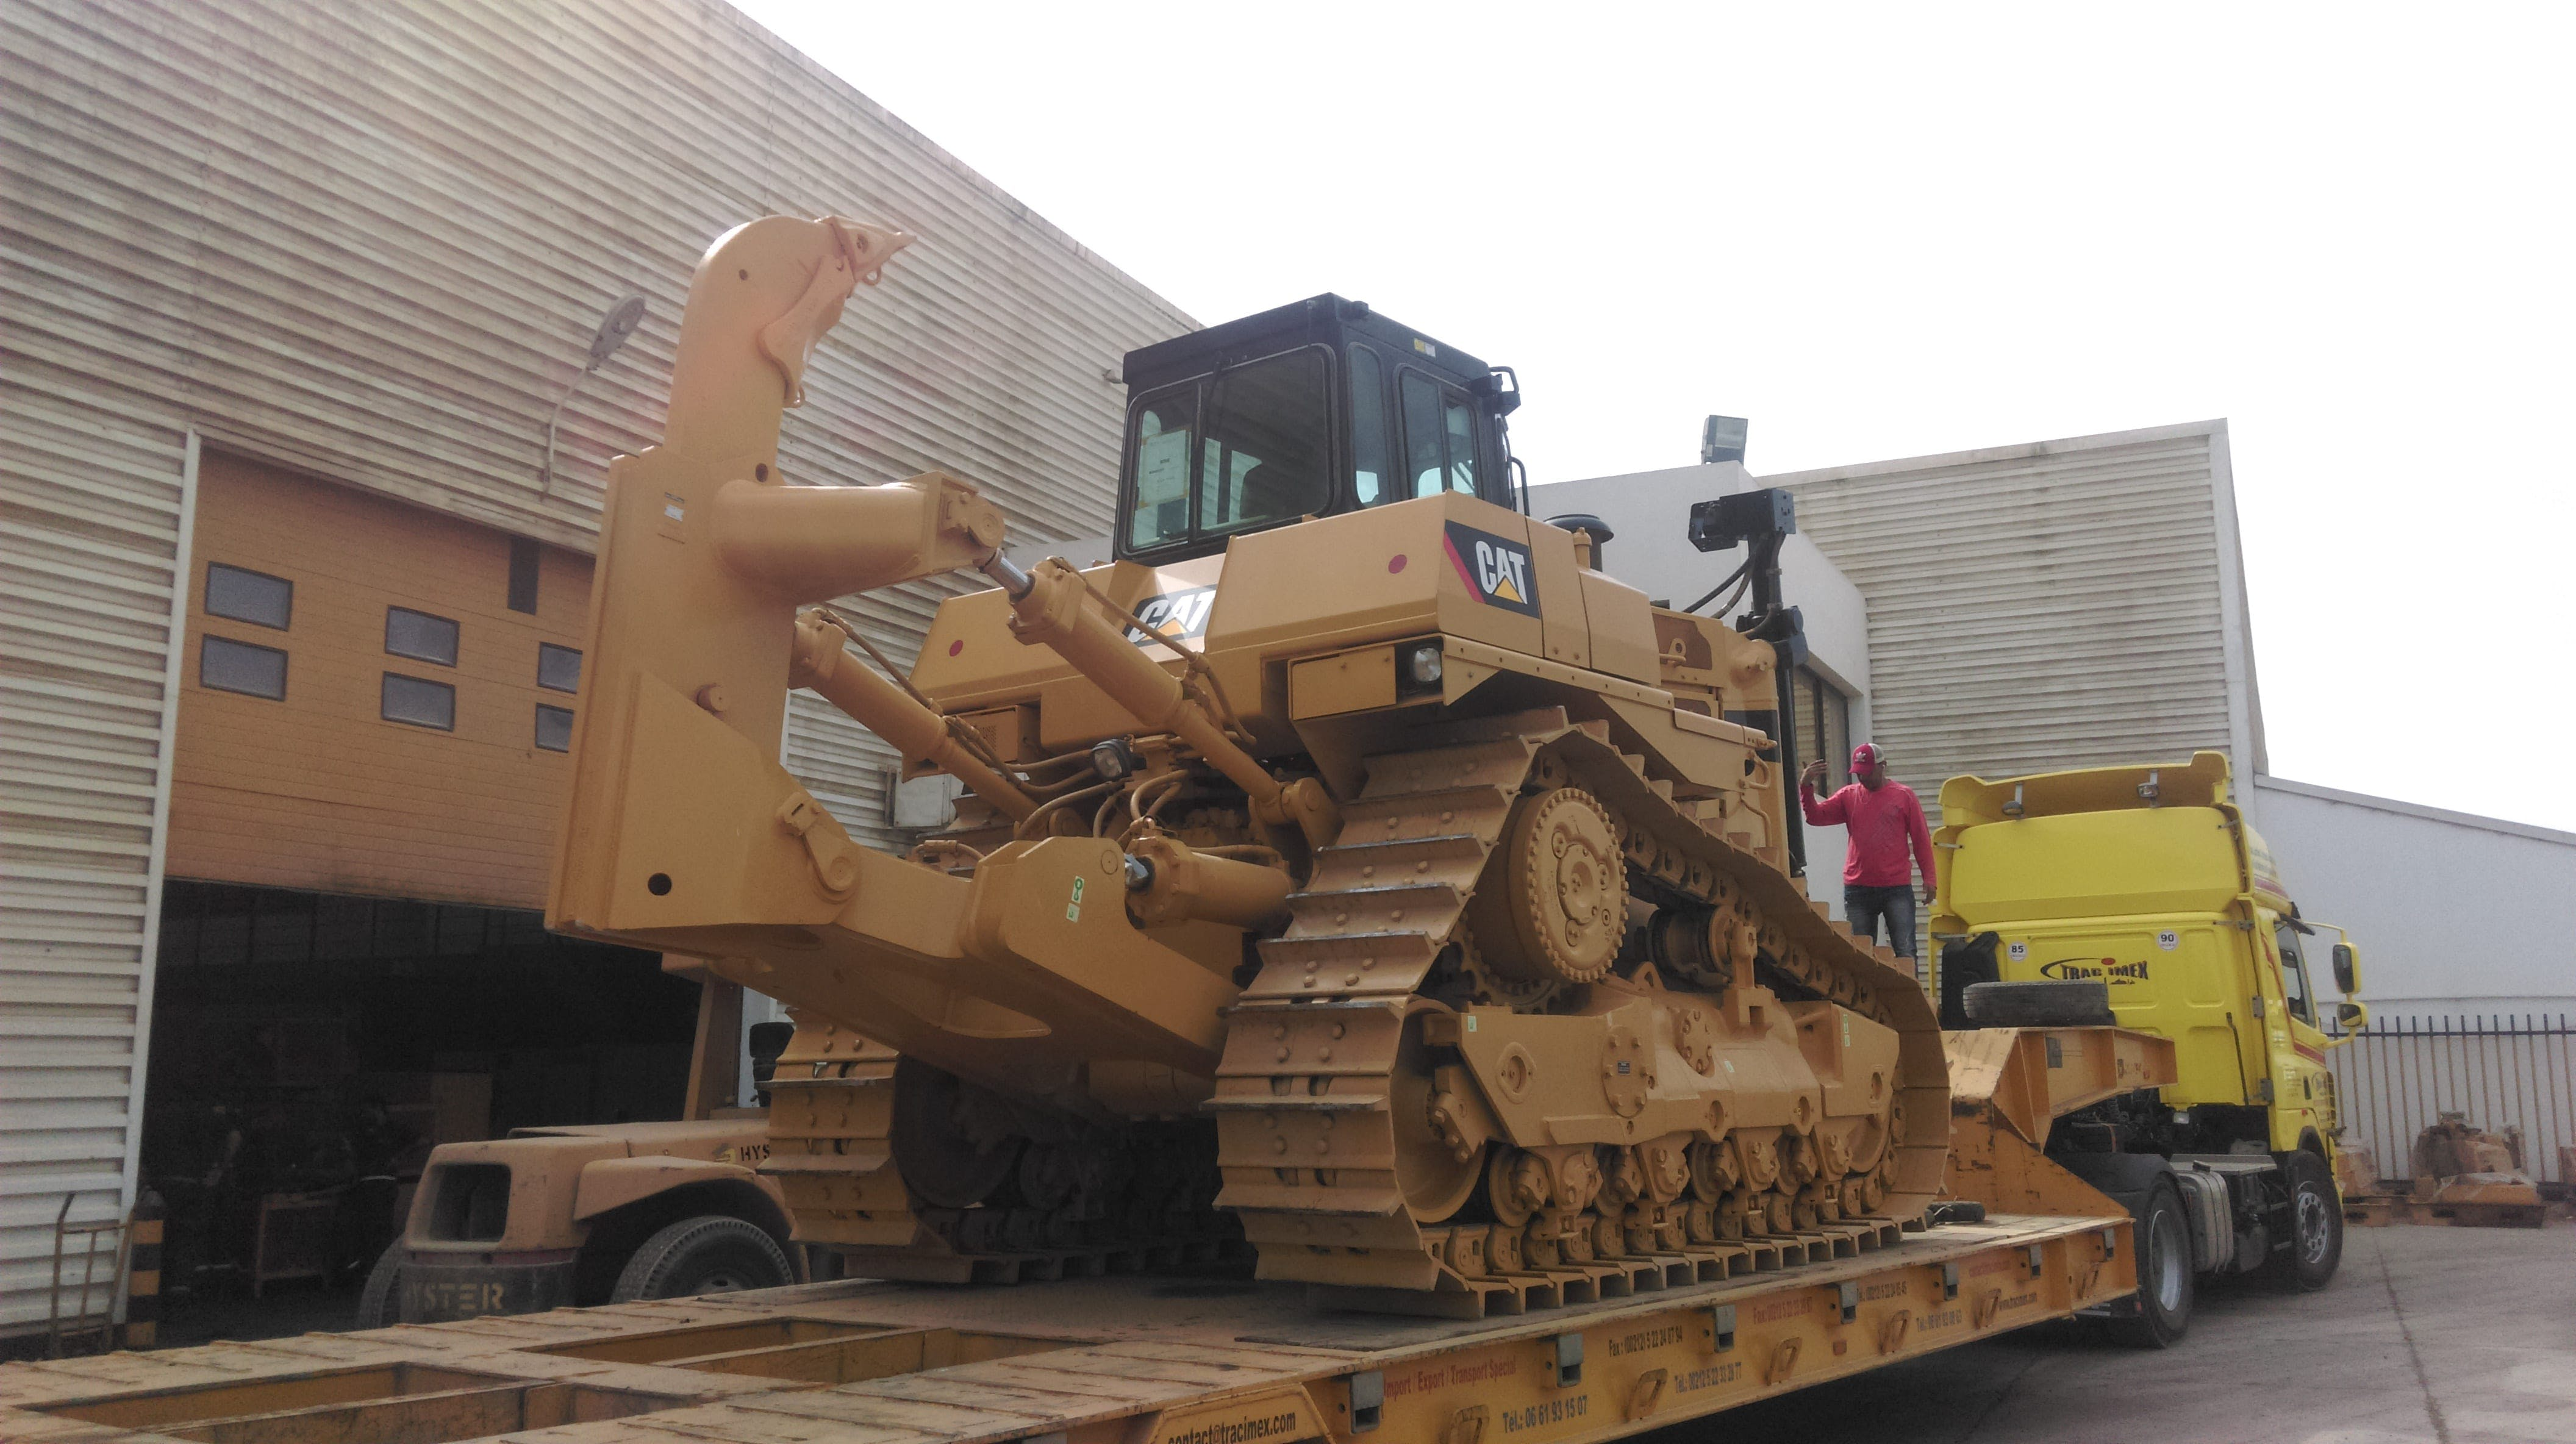 Free stock photo of building and works, caterpillar, construction machinery, industrial building